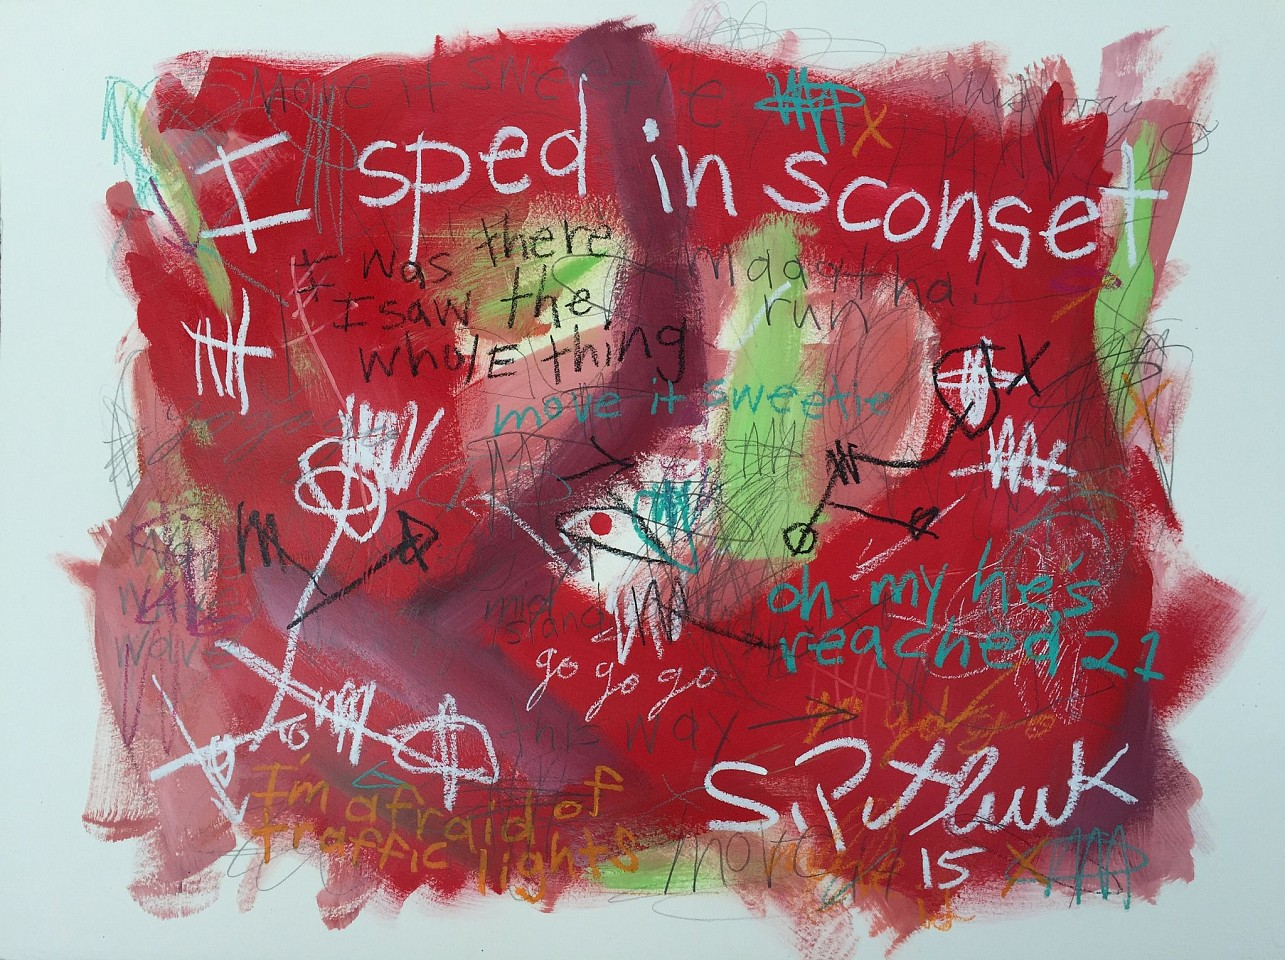 Stephen Pitliuk ,   I Sped in Sconset  ,  2015     mixed media on paper ,  22 x 30 in. (55.9 x 76.2 cm)     SP151203